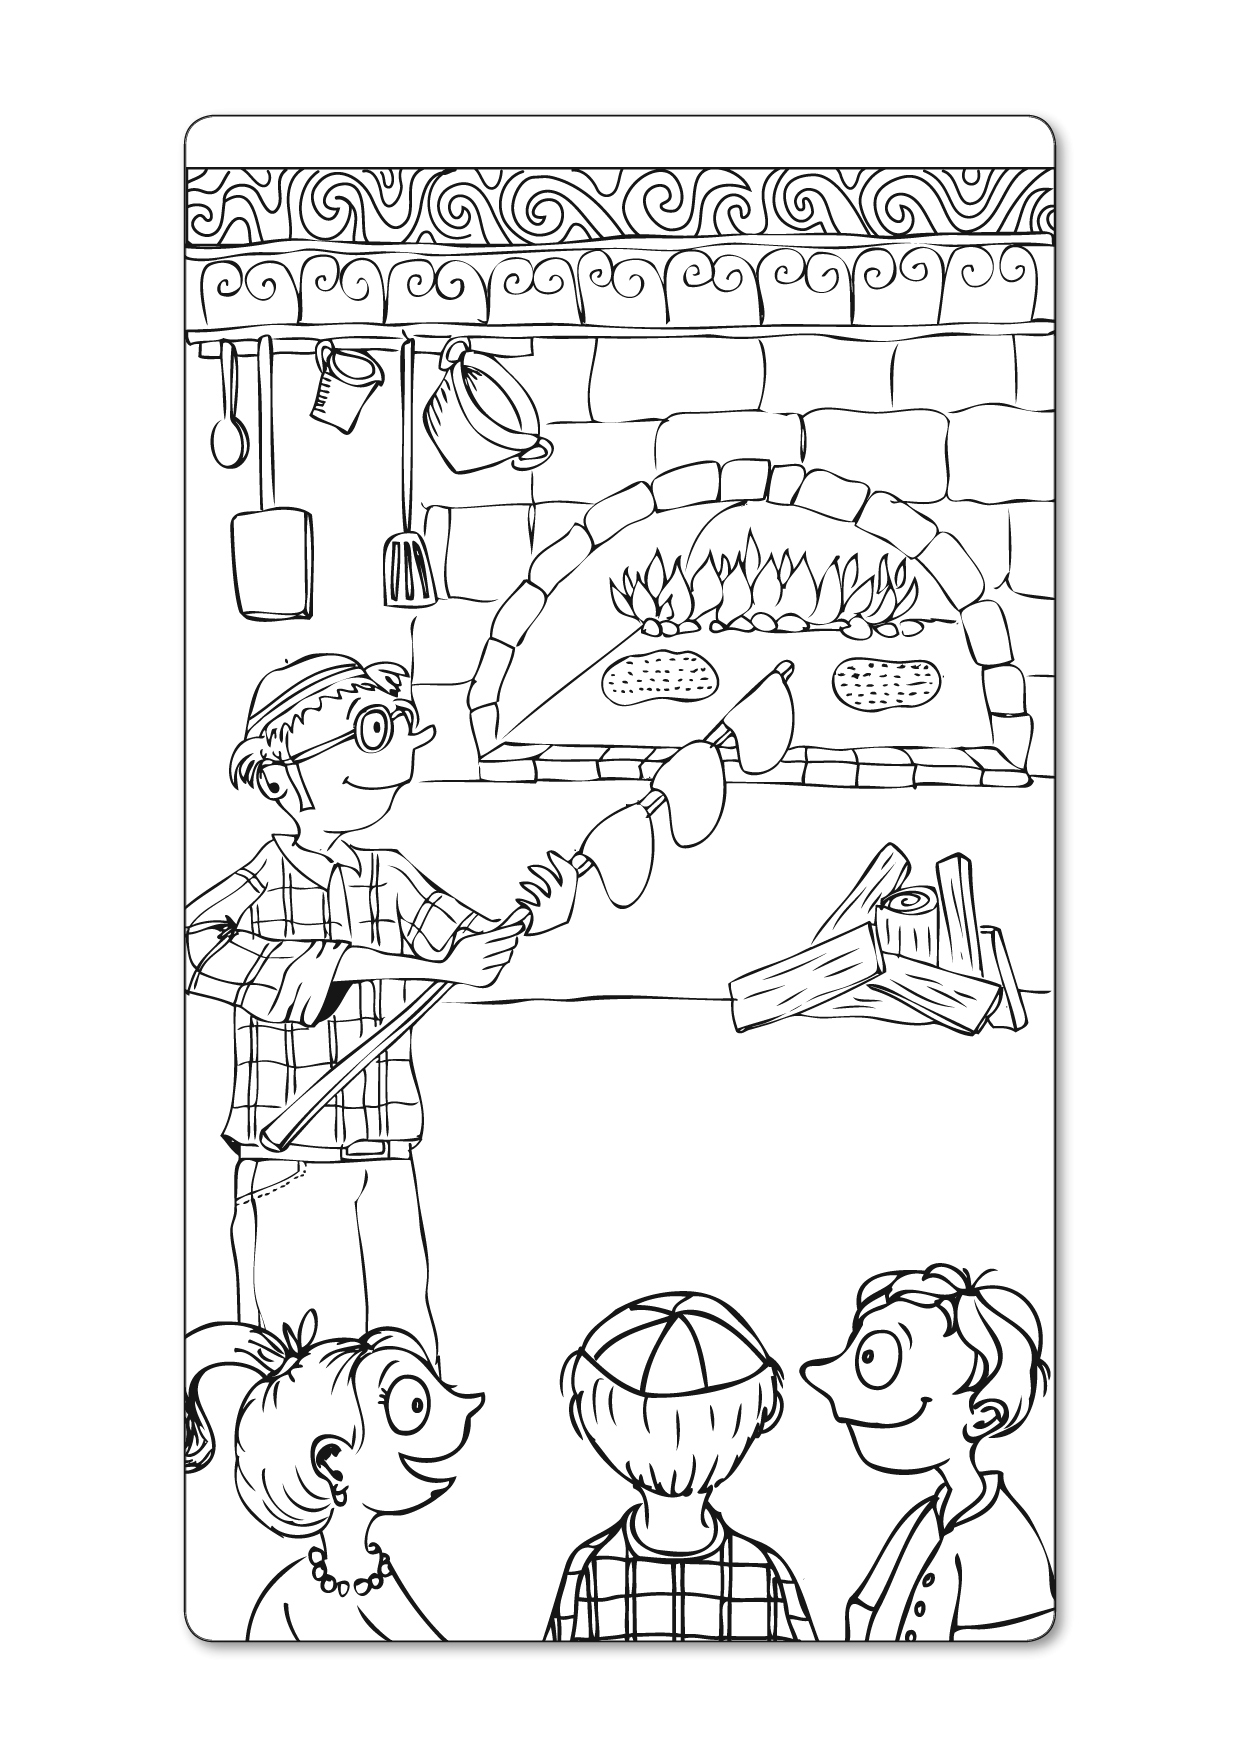 Jacob Coloring Pages At Getcolorings